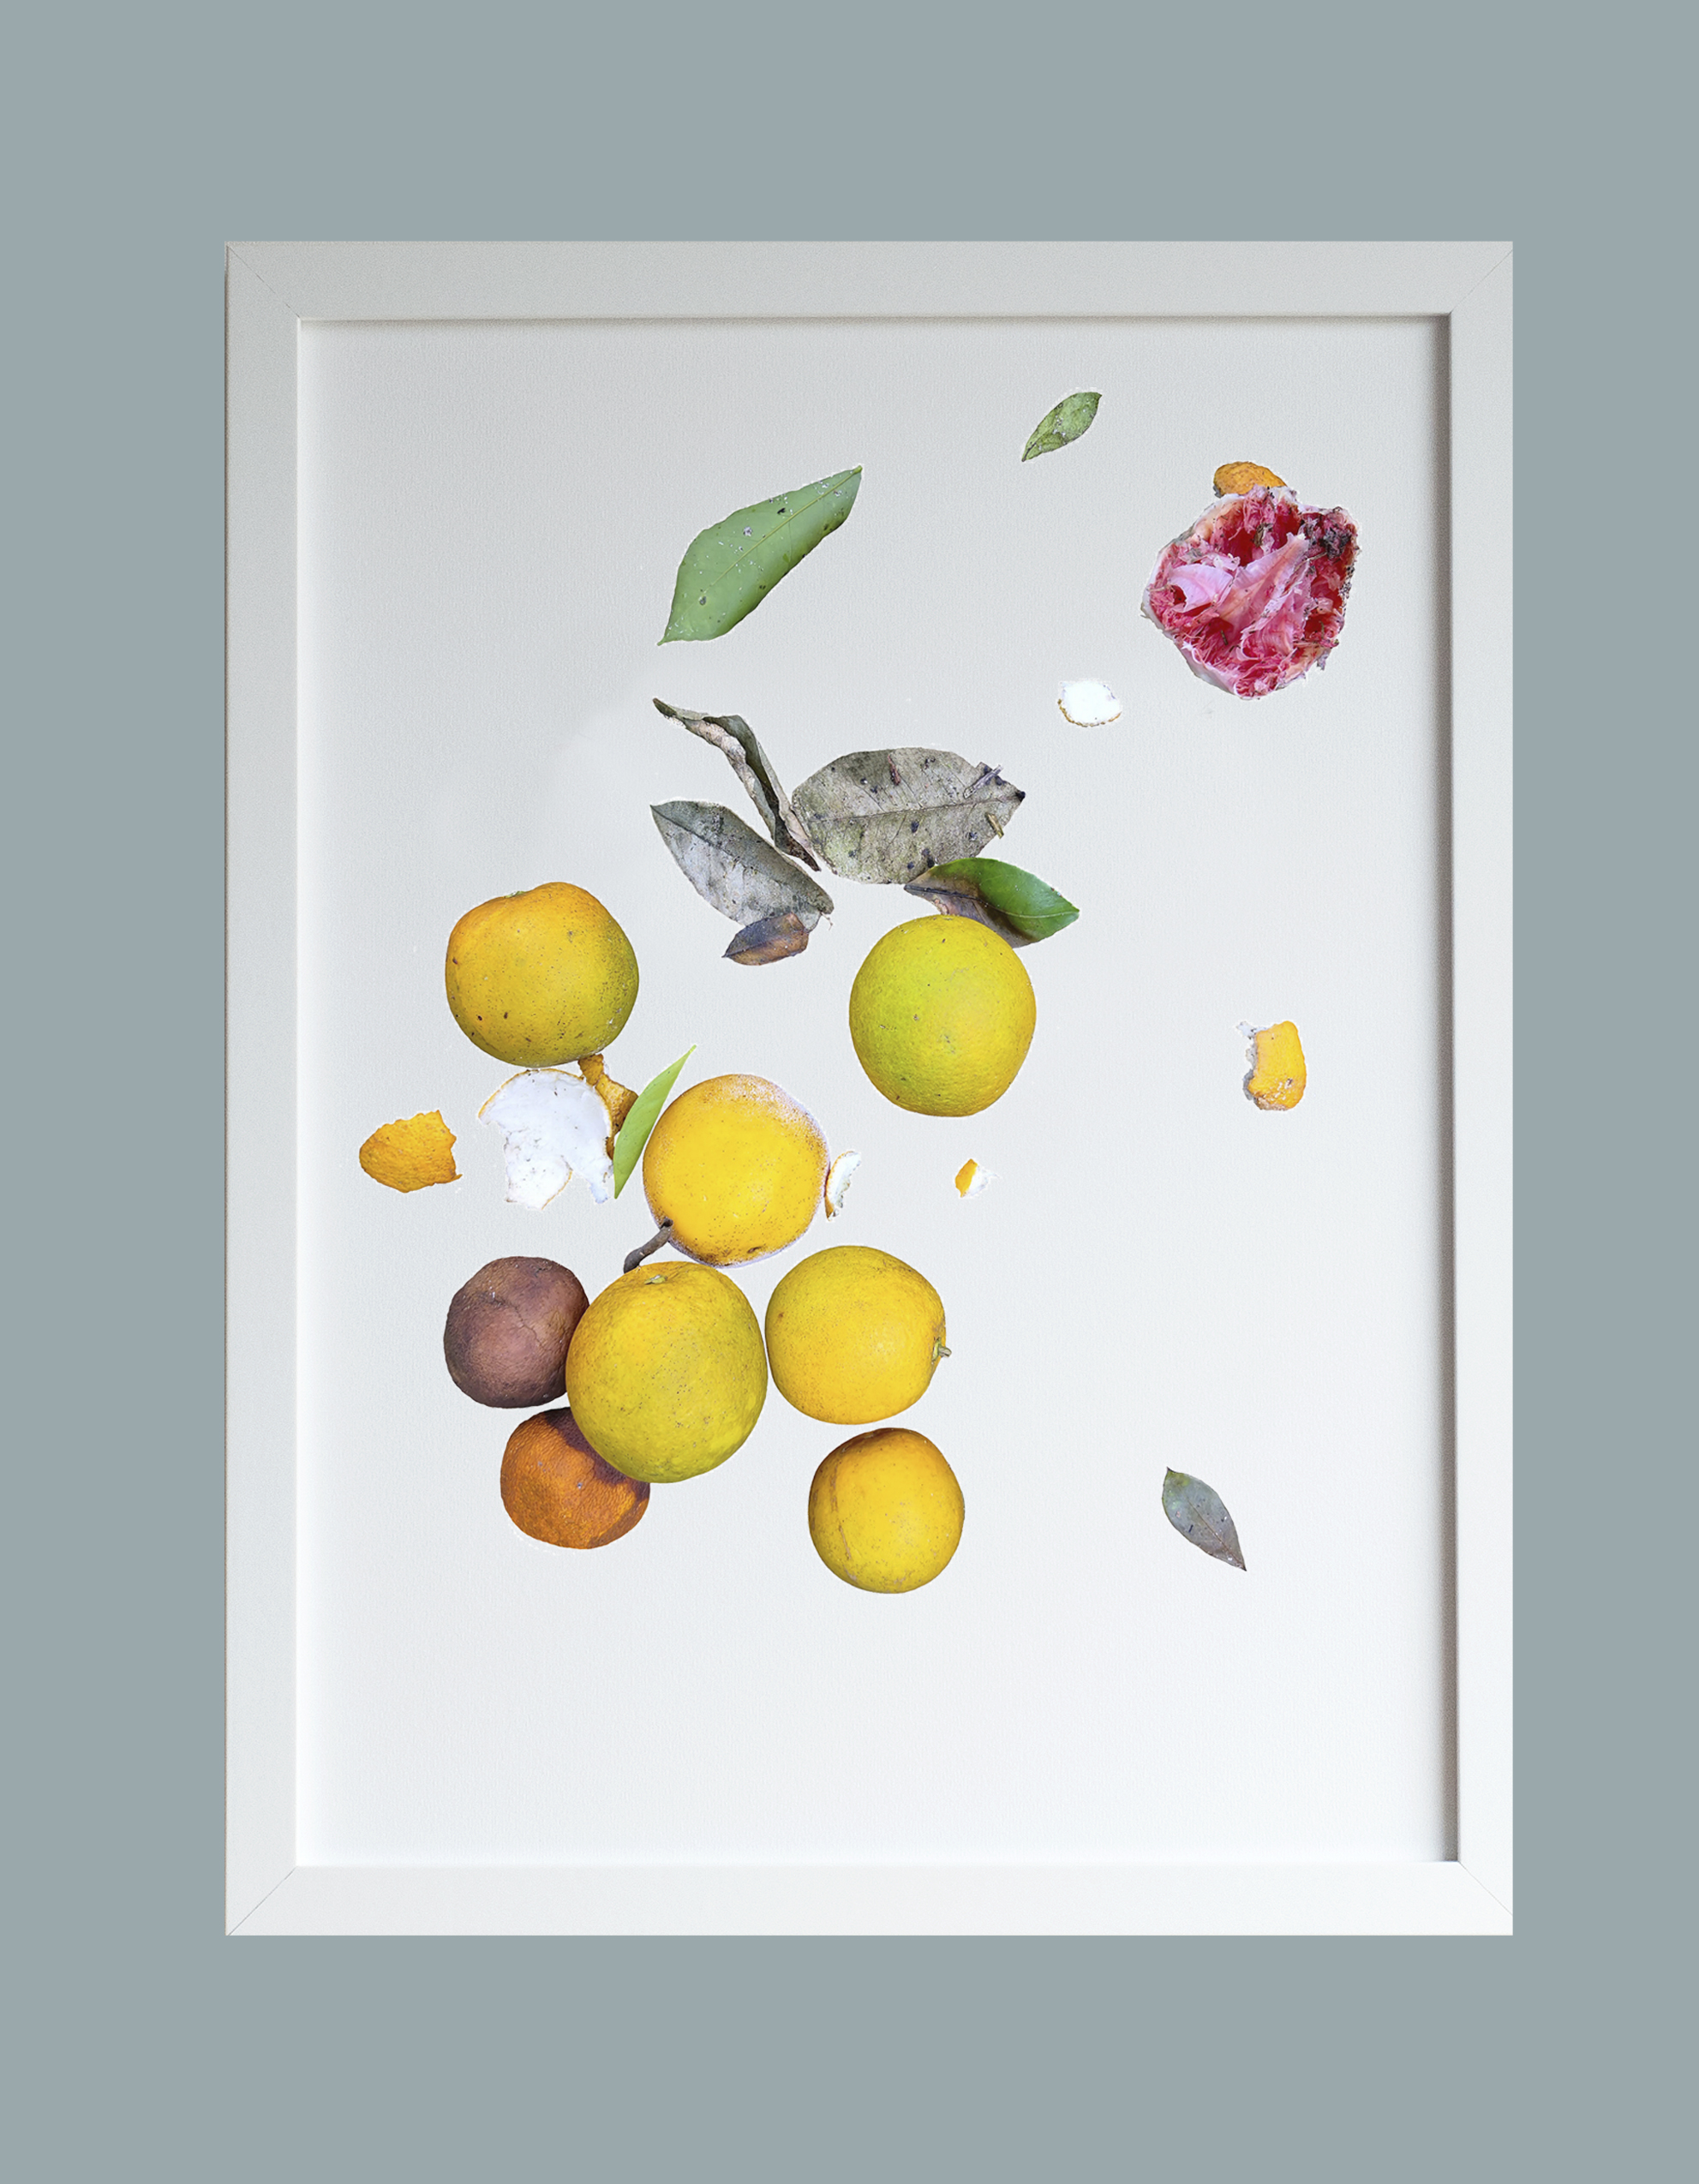 Image of framed print featuring a decaying citrus photo design